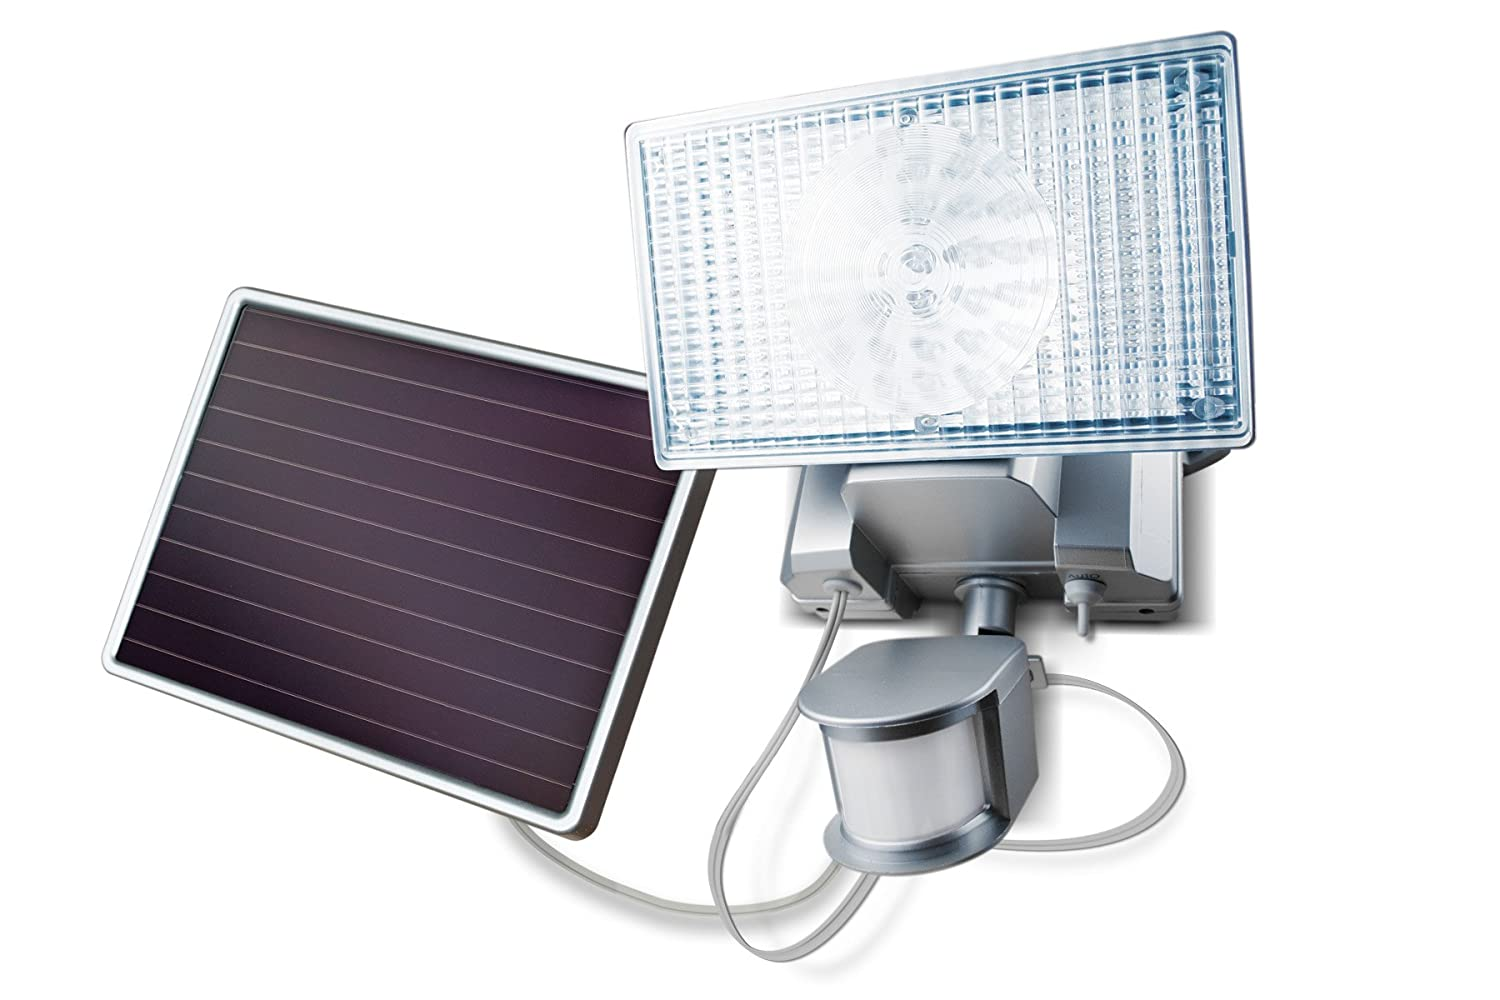 amazoncom maxsa security floodlight 100 led bright solar powered outdoor light silver automotive